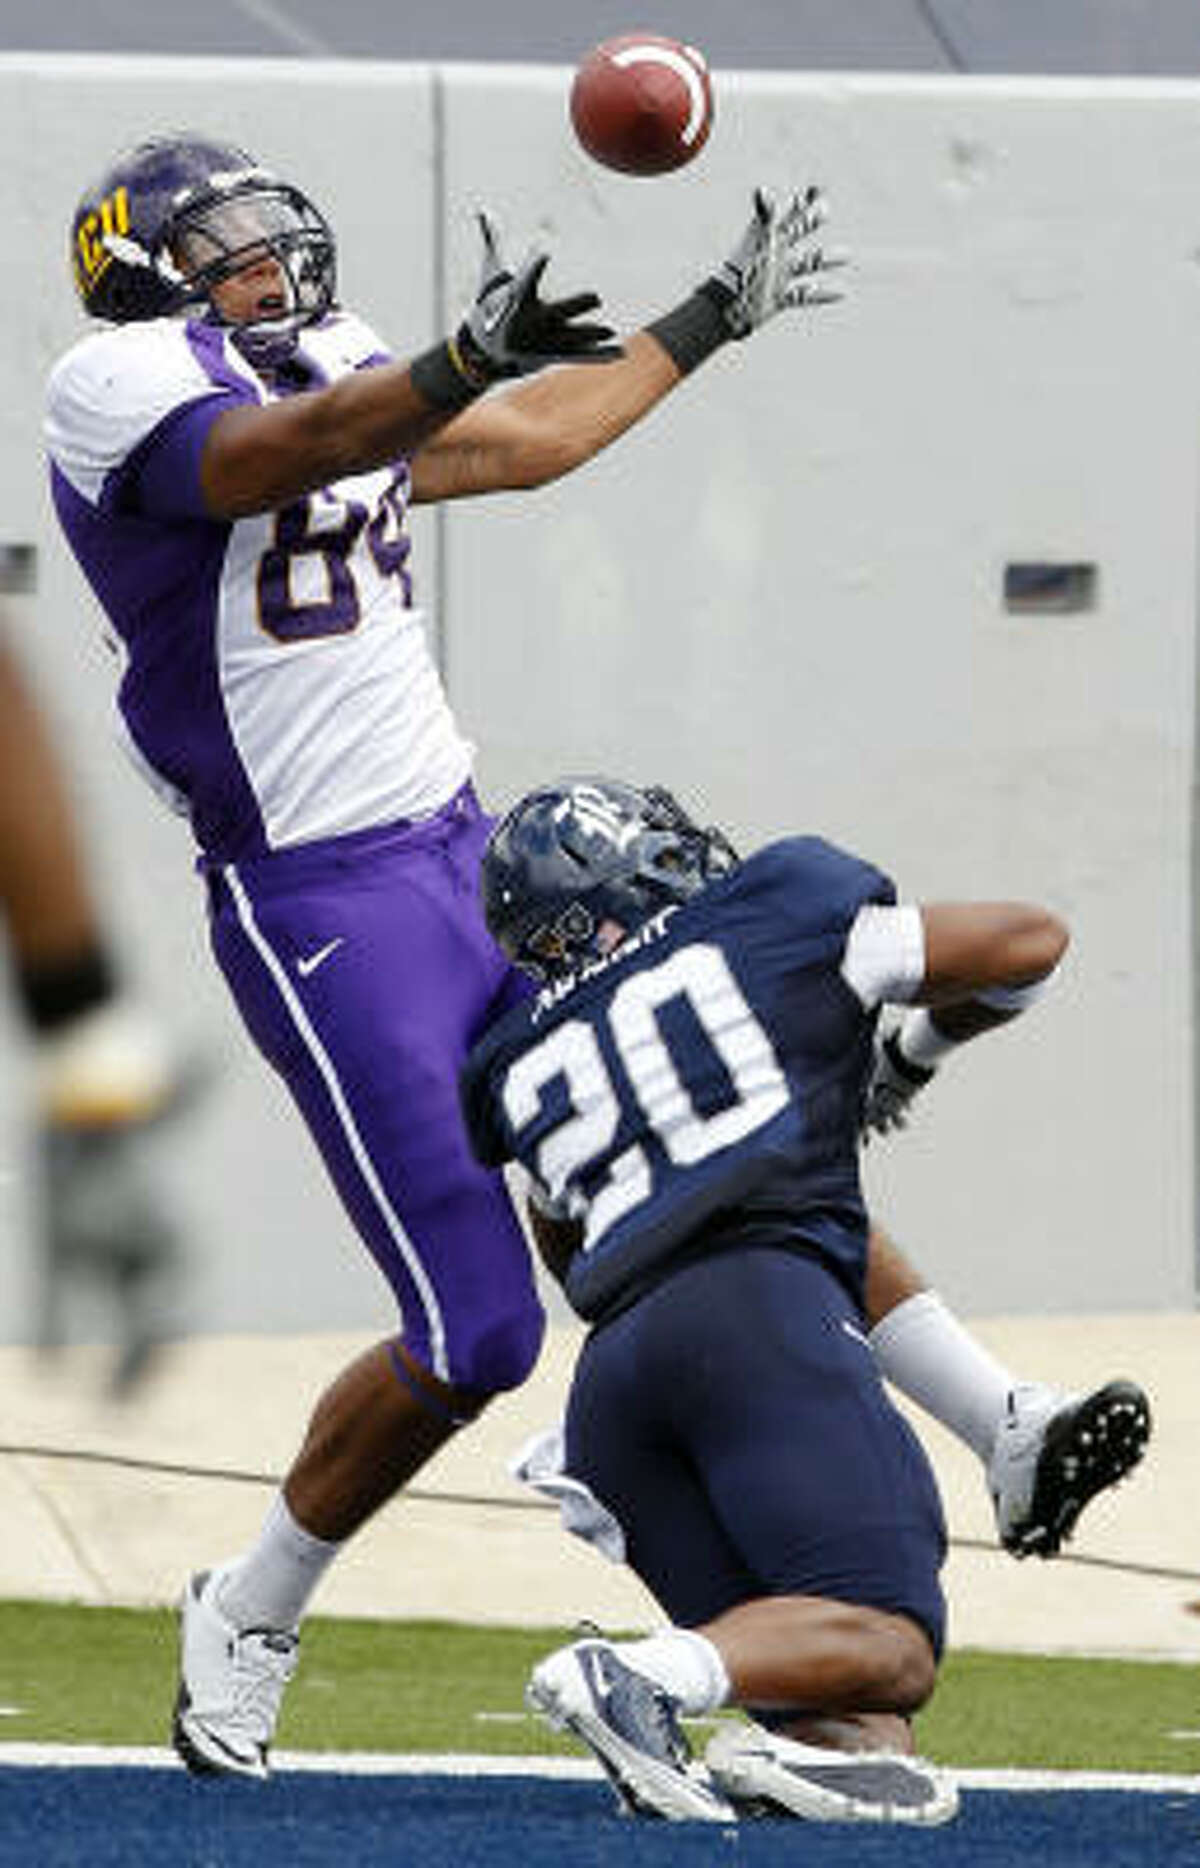 Rice defender Corey Frazier (20) breaks up pass in end zone intended for East Carolina's Justin Jones.